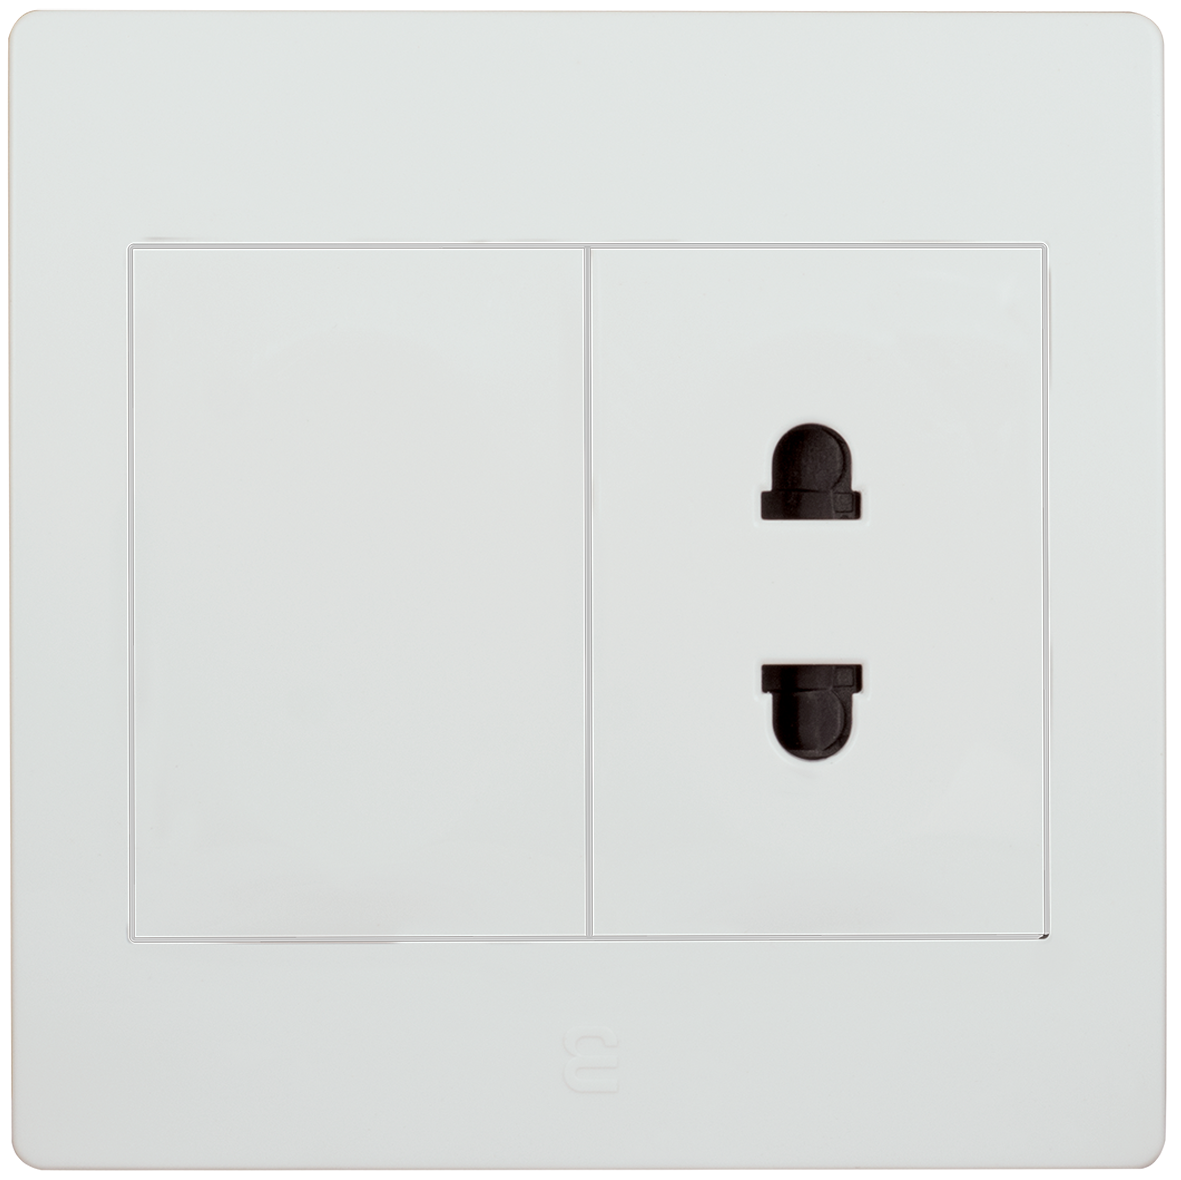 Socket euro-american type with blank